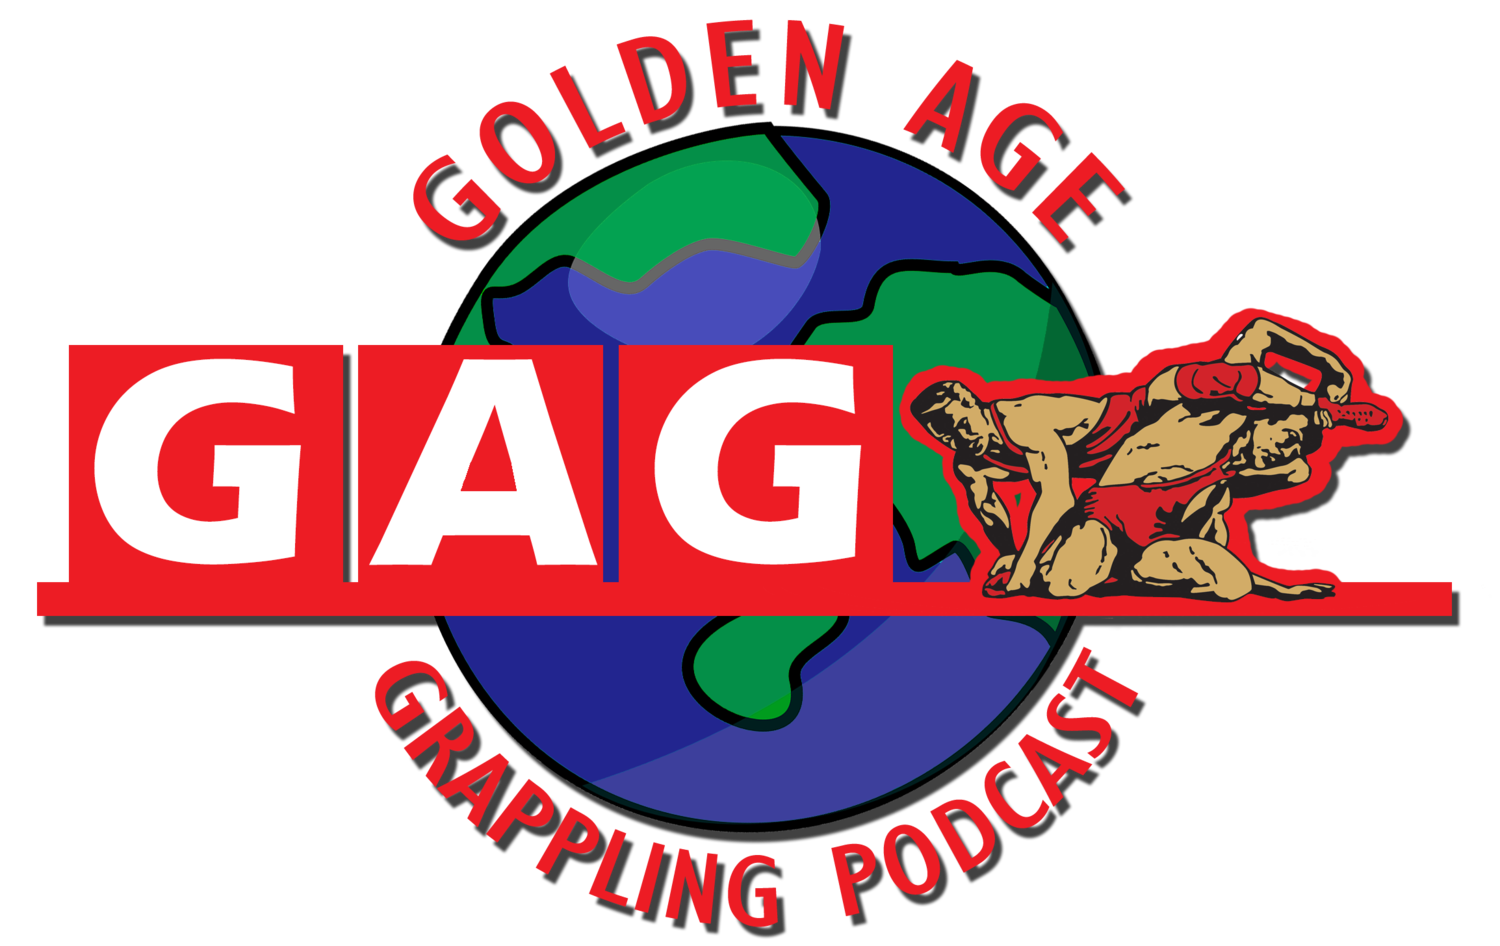 King of the ring png. Golden age grappling podcast